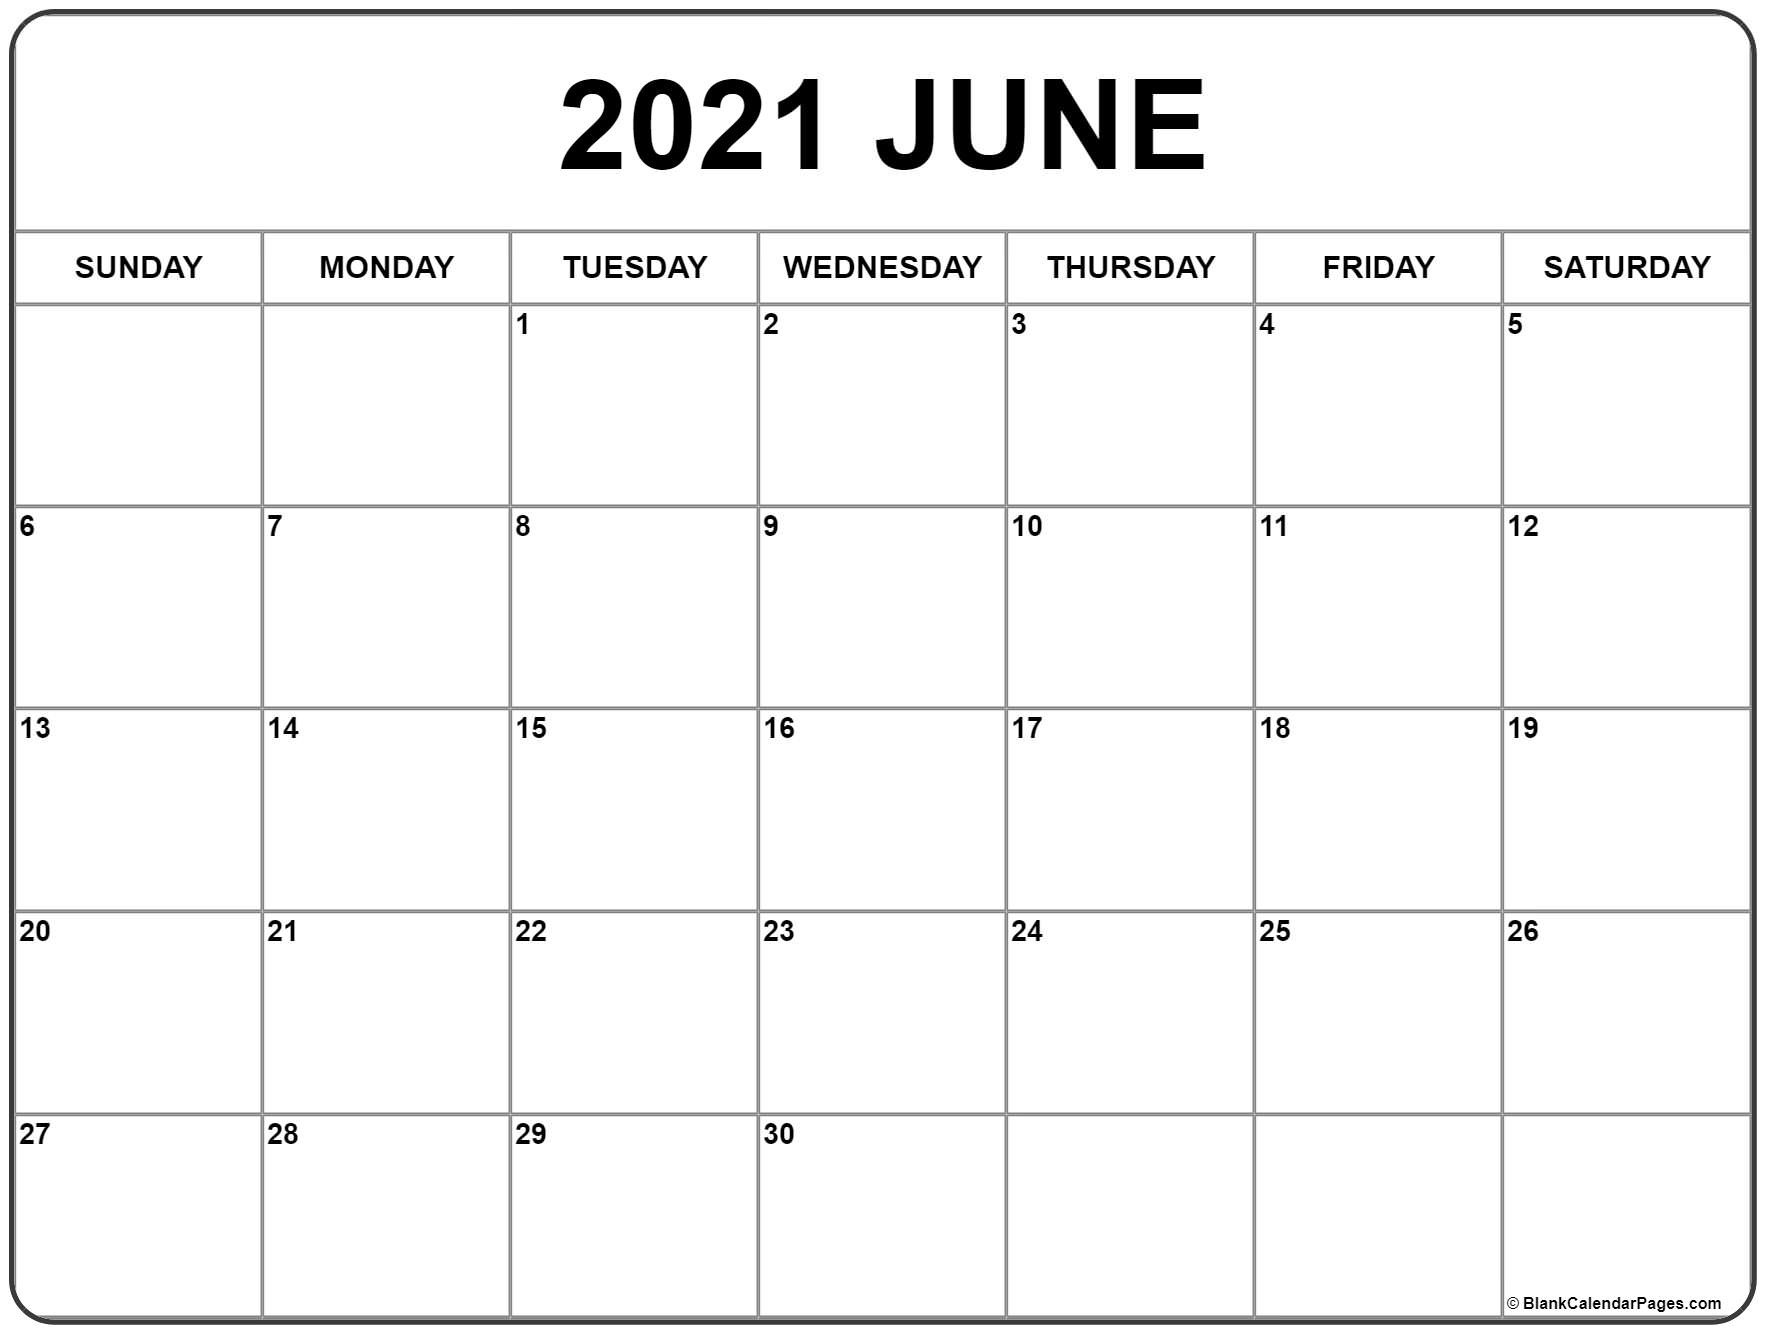 June 2021 Calendar | Free Printable Monthly Calendars  Date Code Calendar 2021